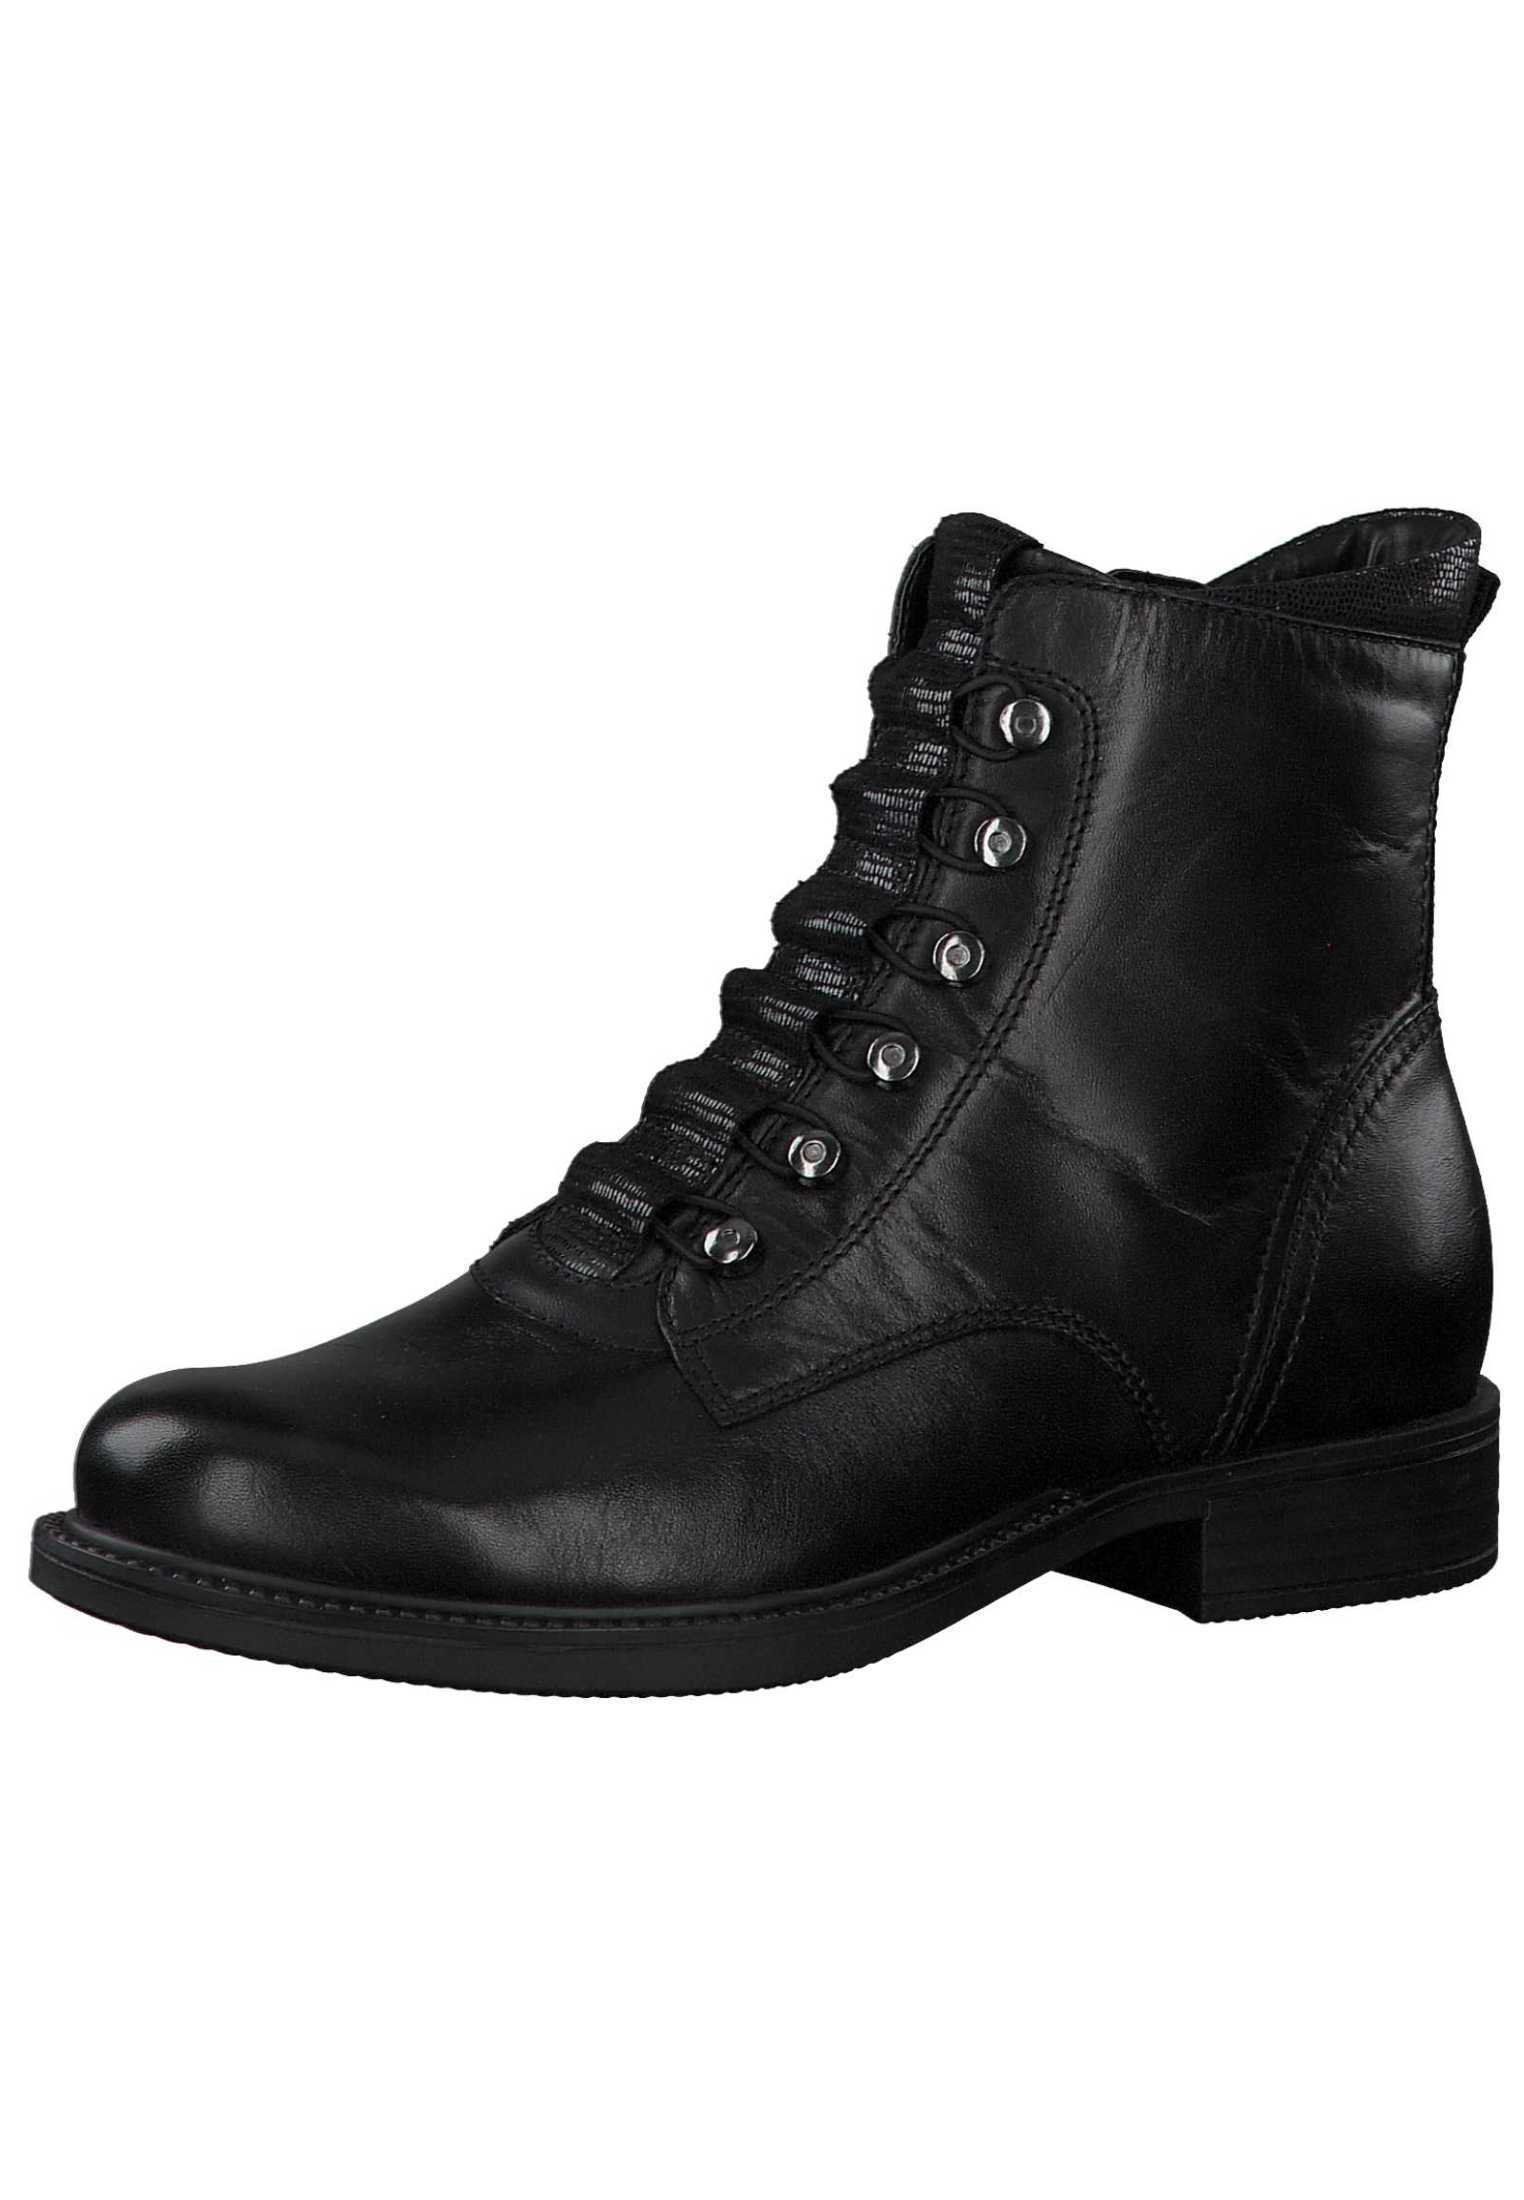 Tamaris Ankle Boot black/schwarz